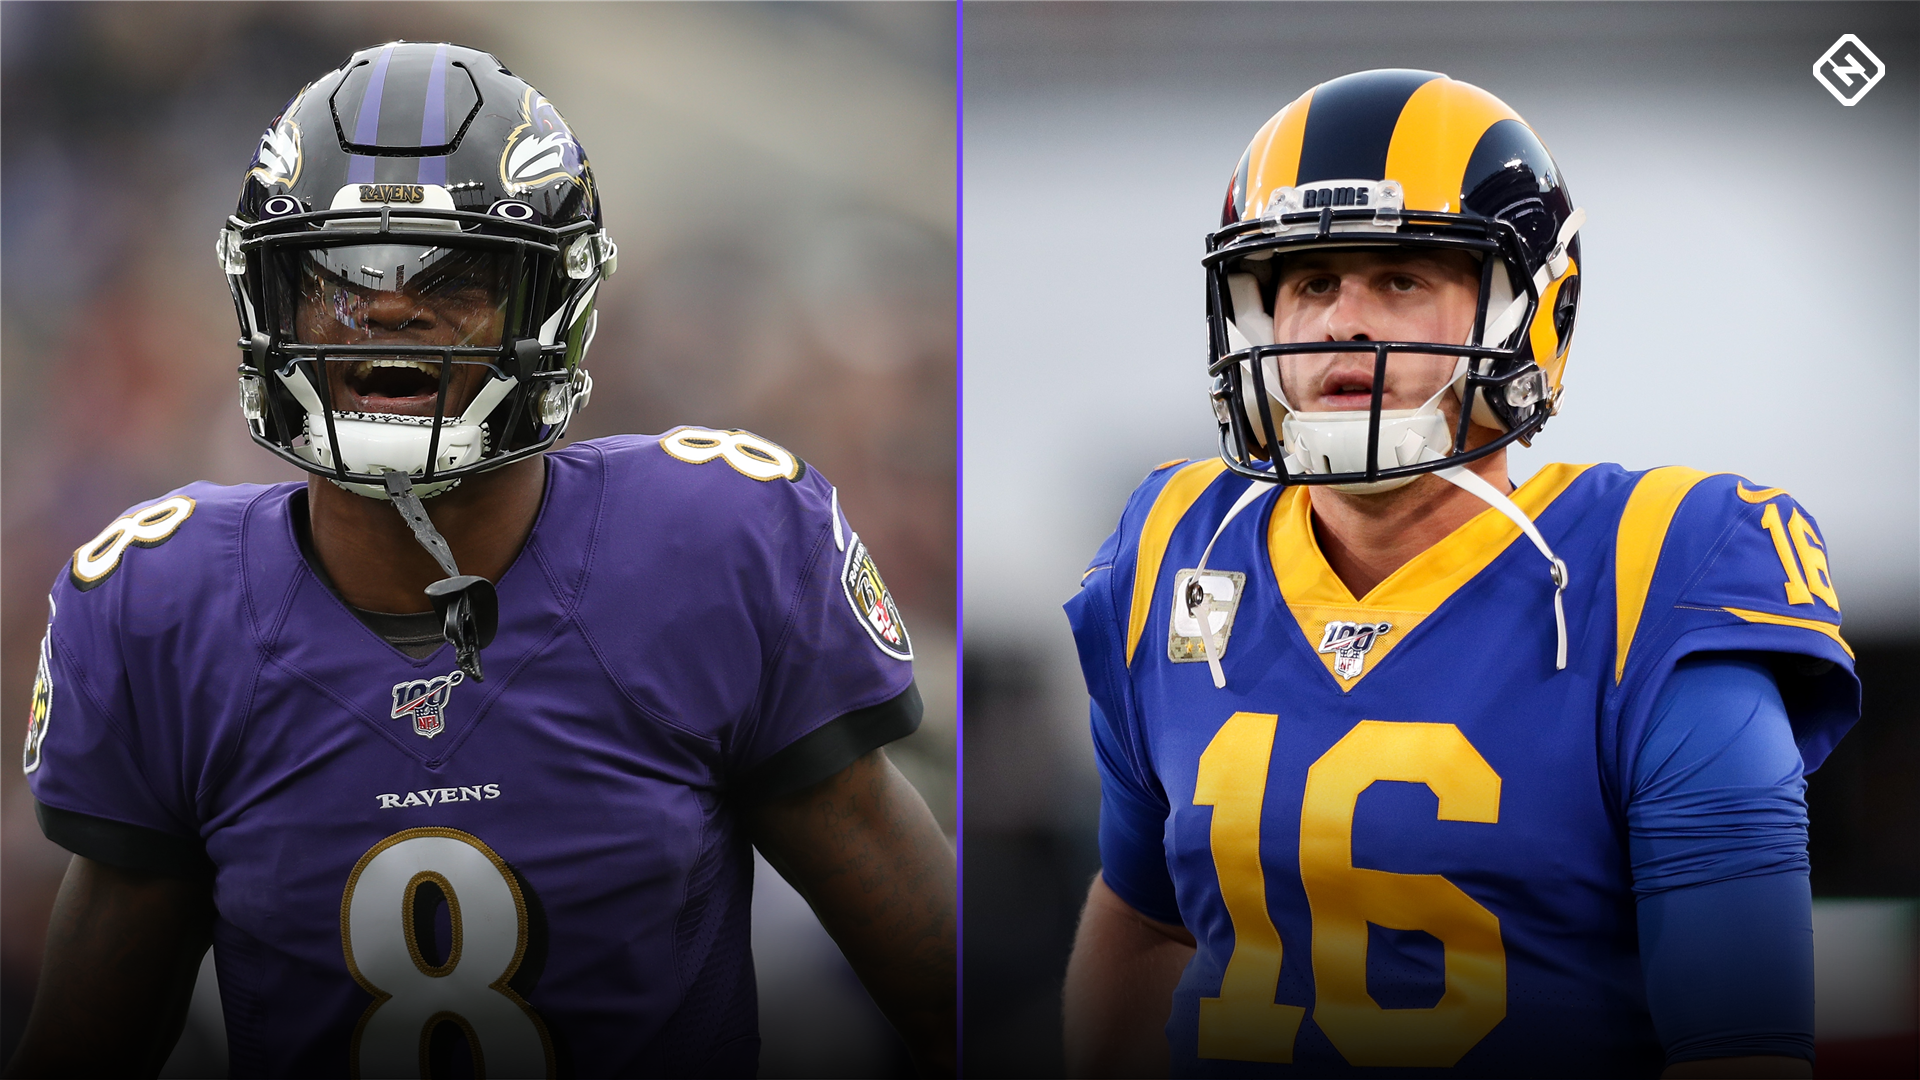 Image result for monday night football rams vs ravens Goff v Jackson